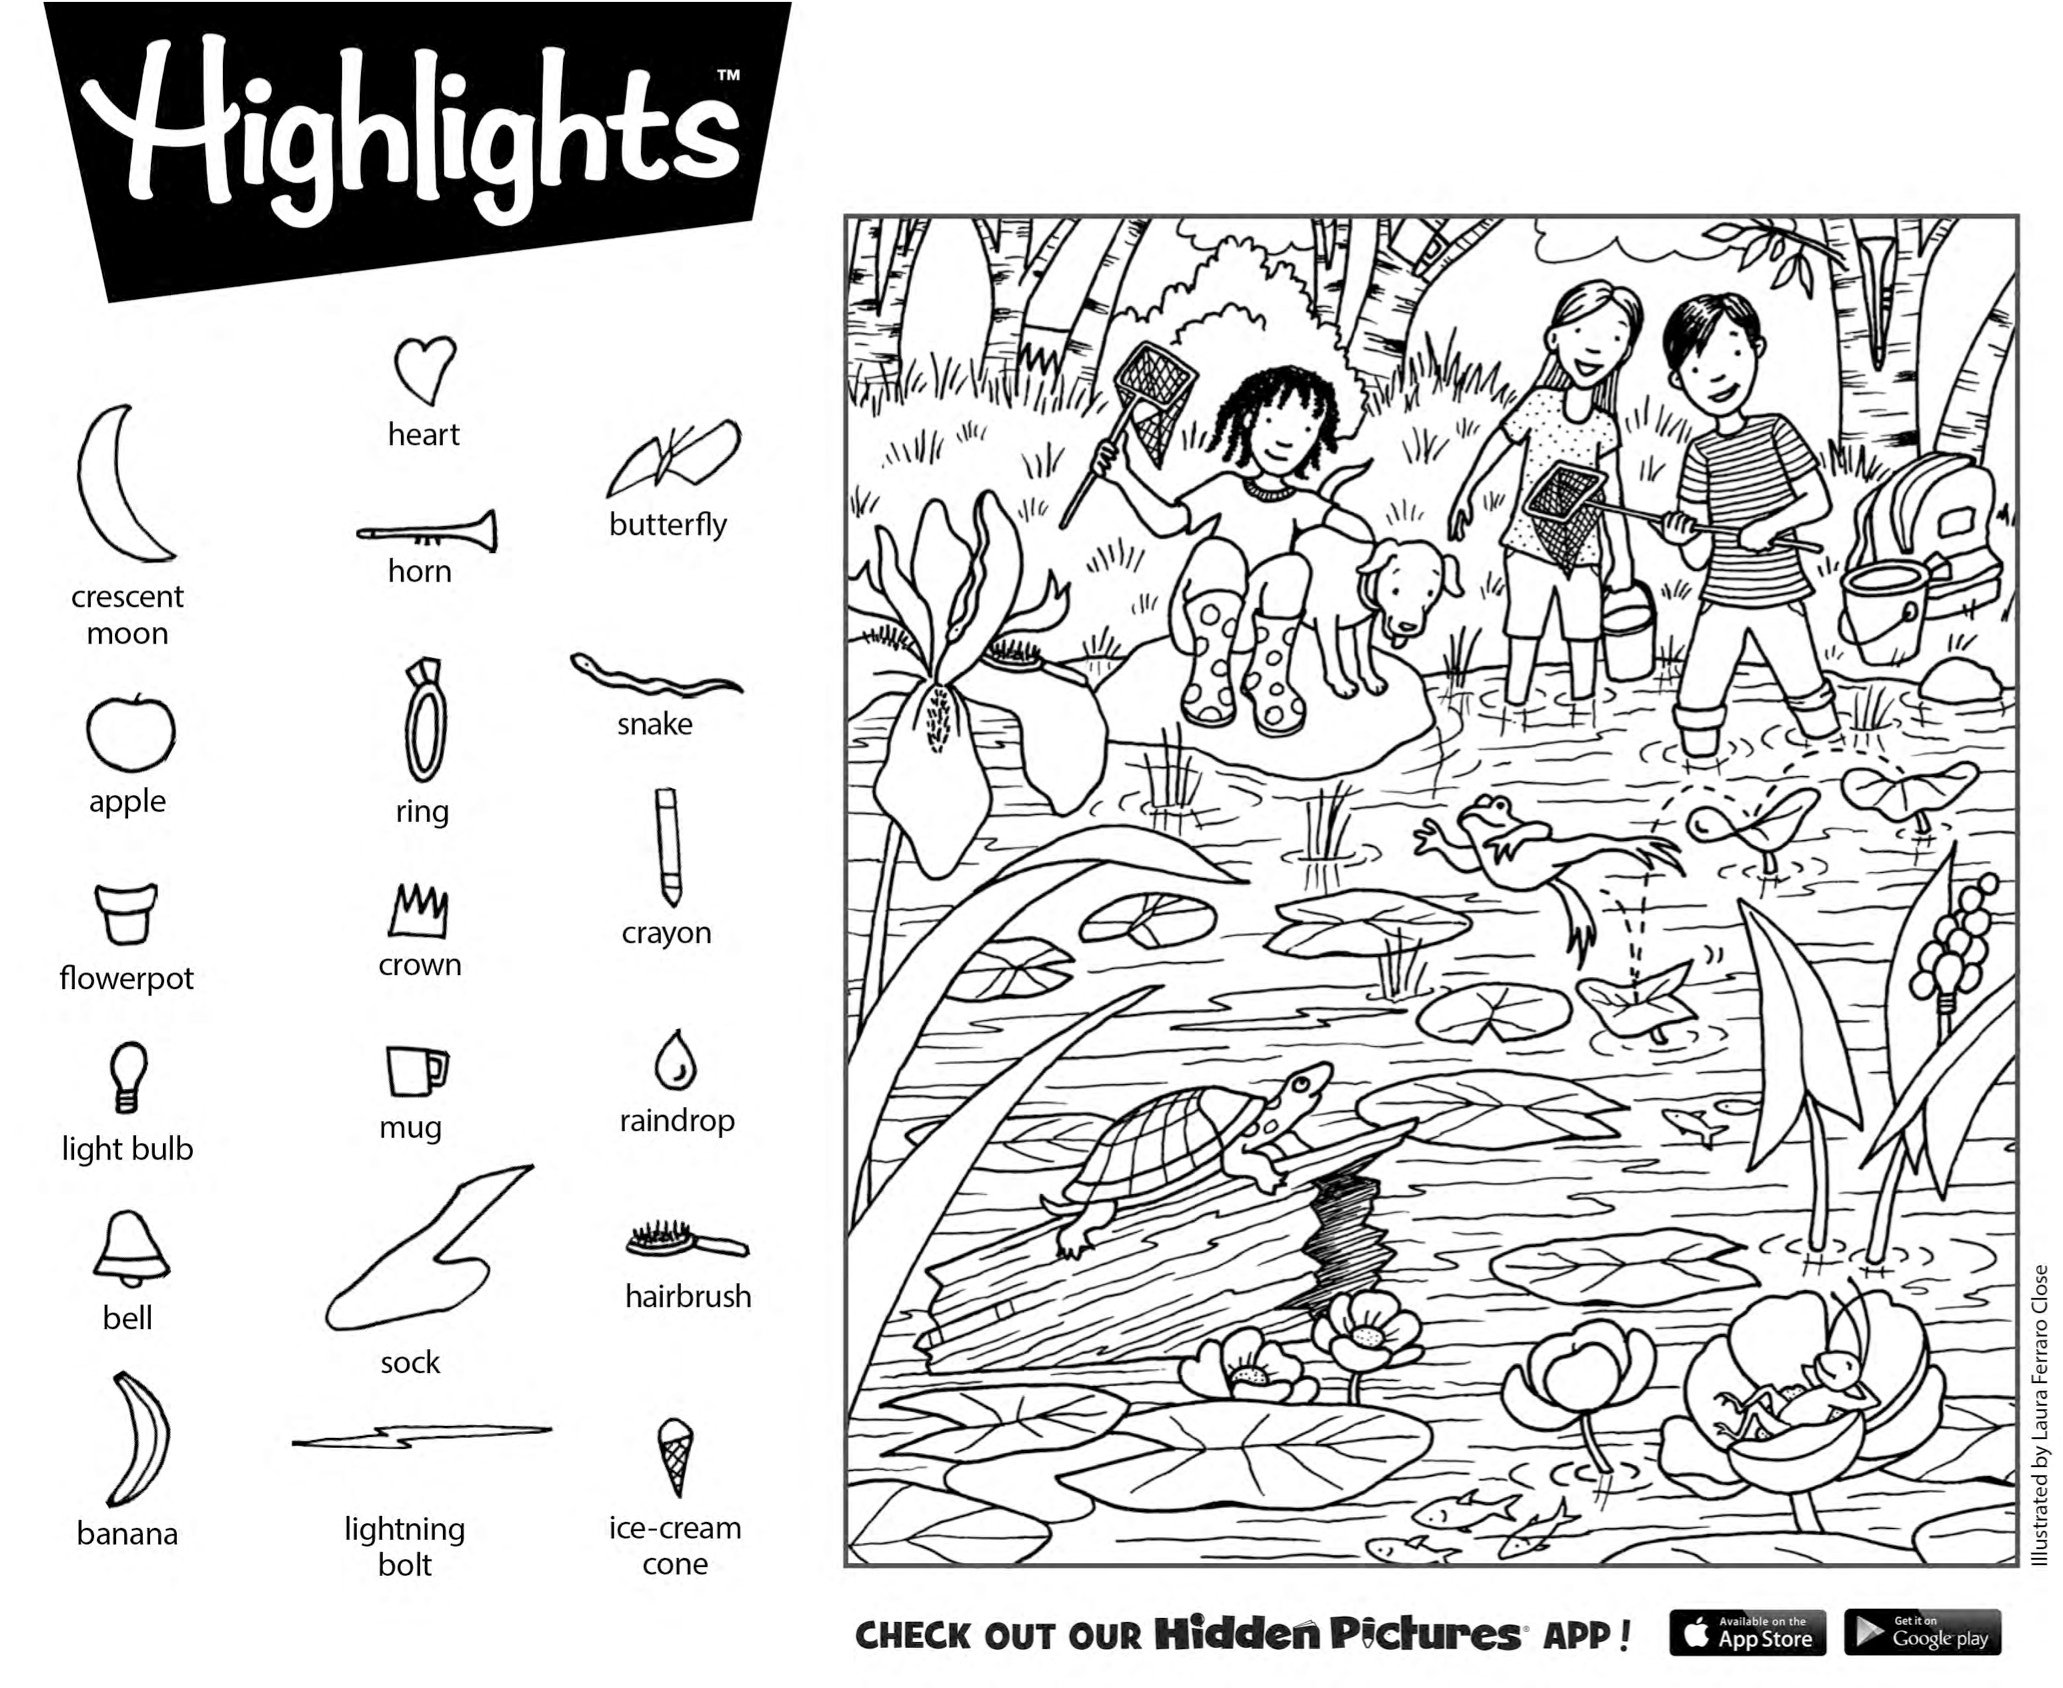 Download This Free Printable Hidden Pictures Puzzle From - Free Printable Hidden Pictures For Kids